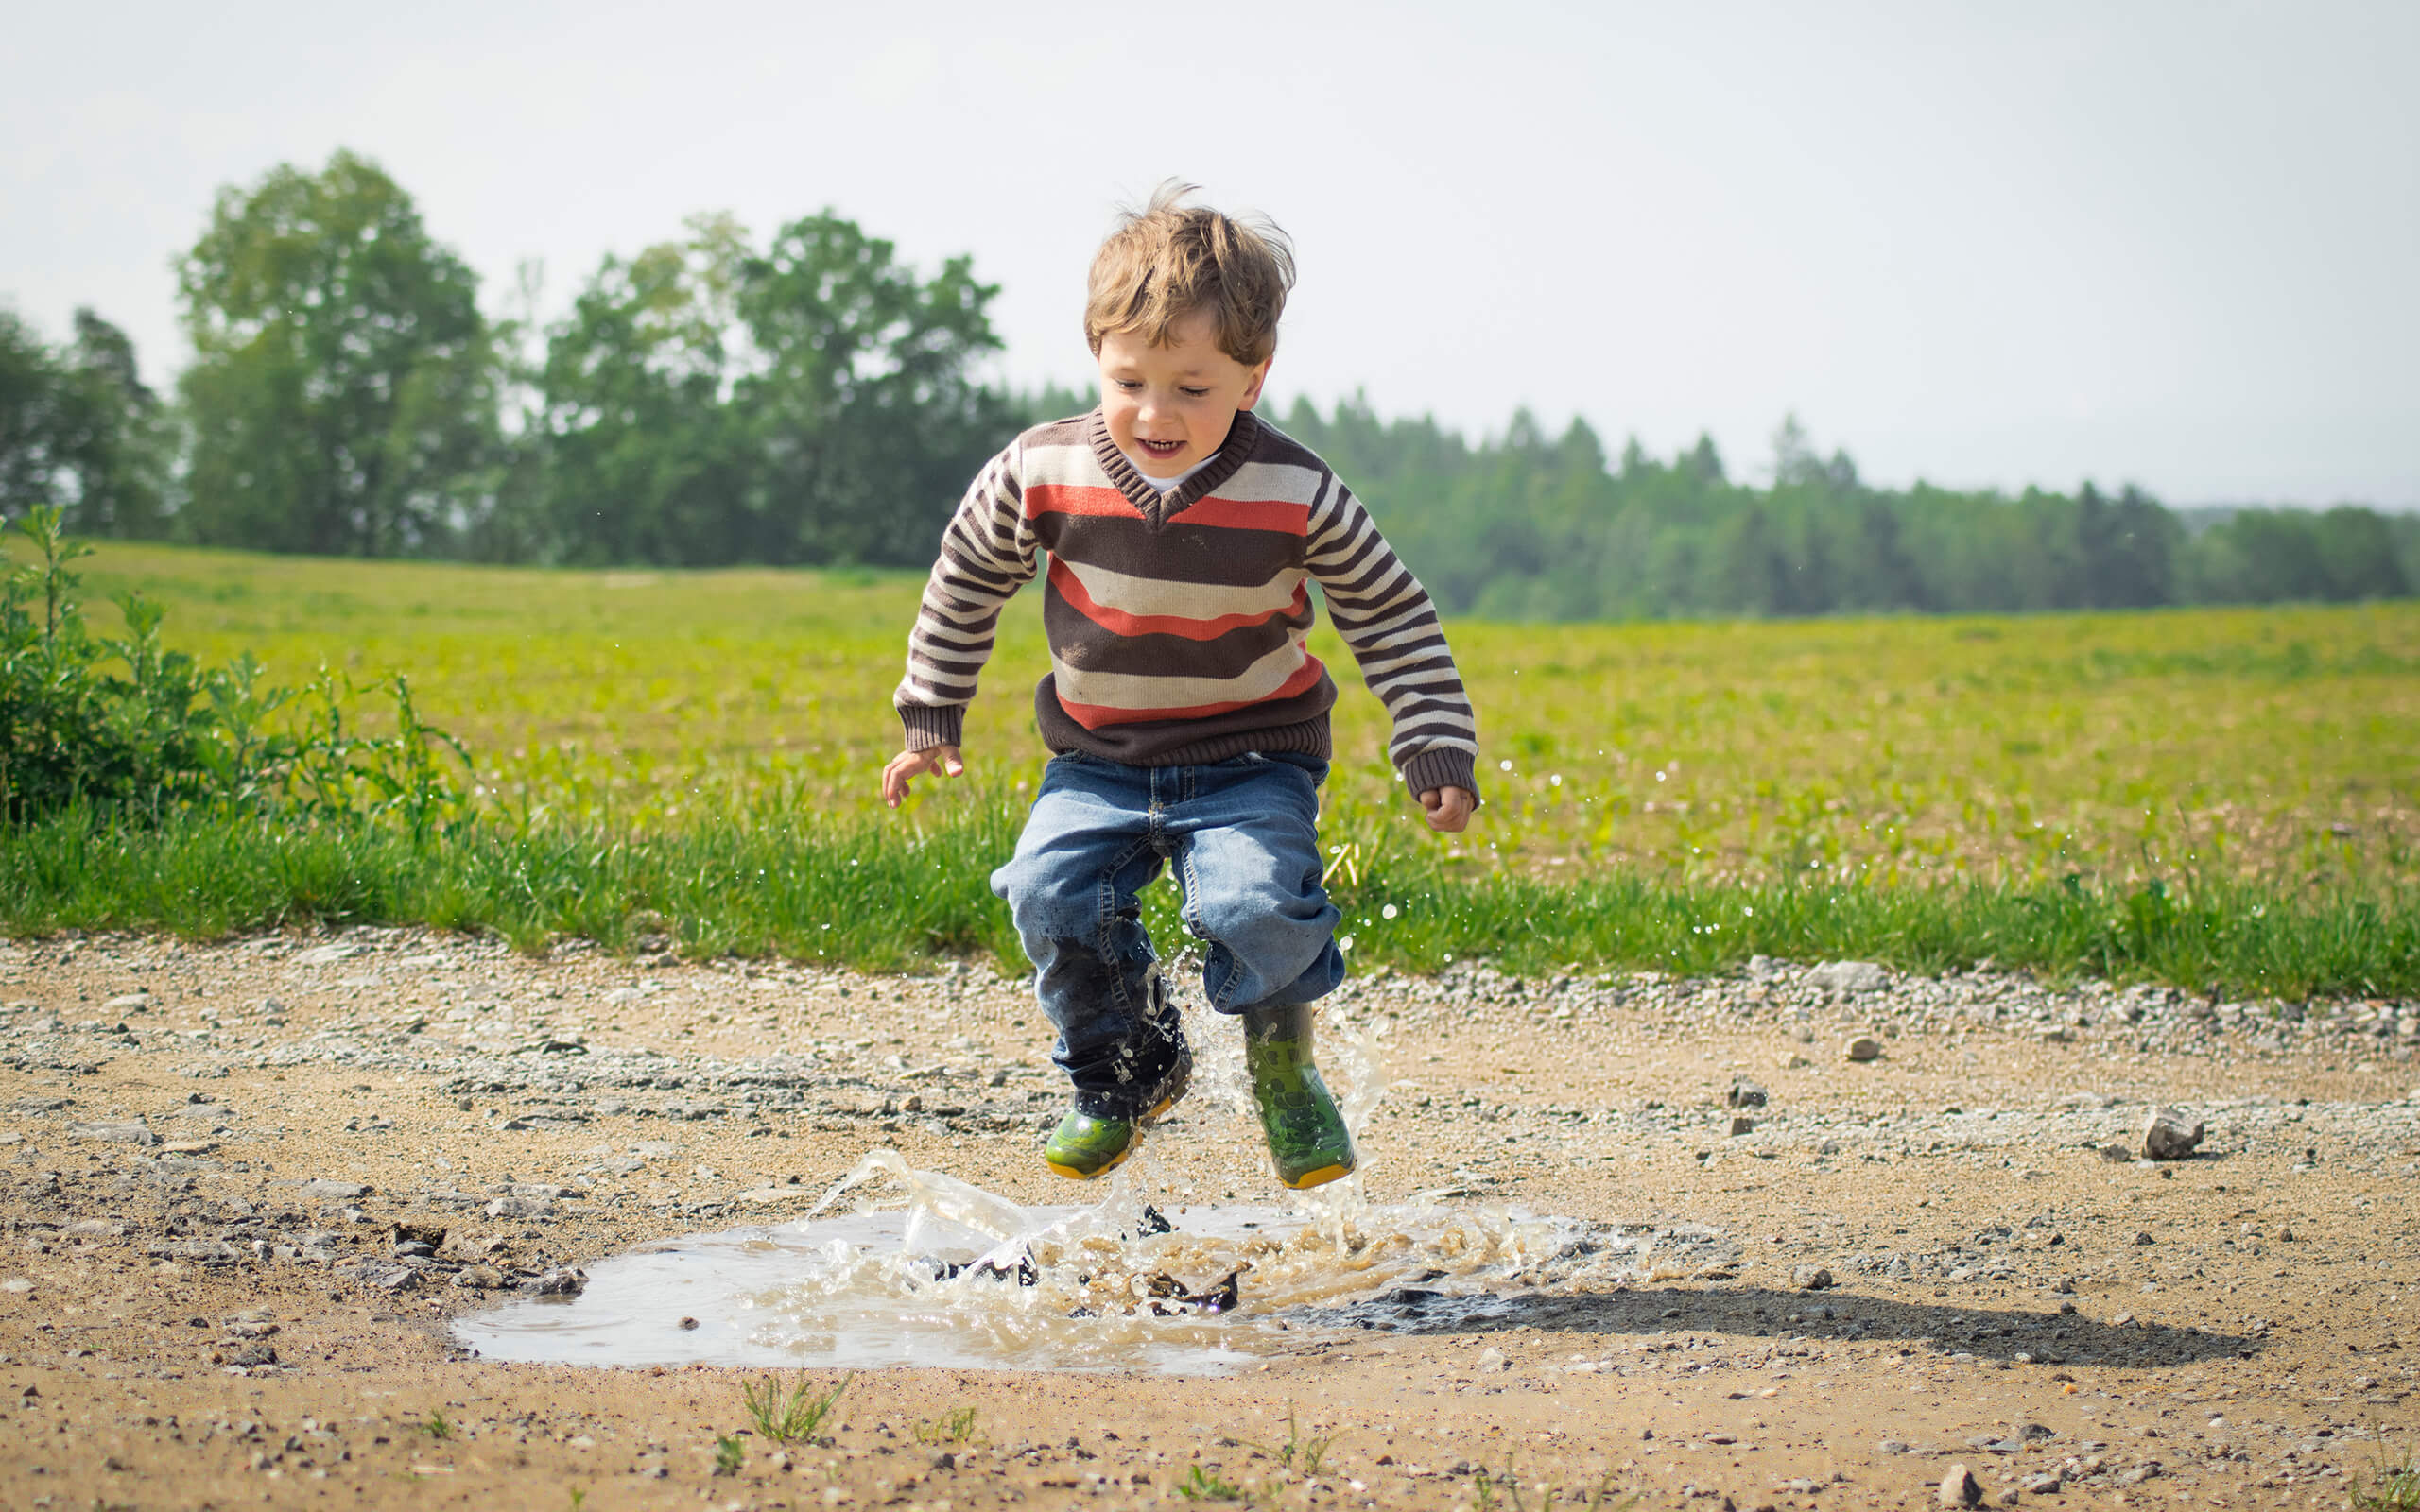 a child jumping in a puddle